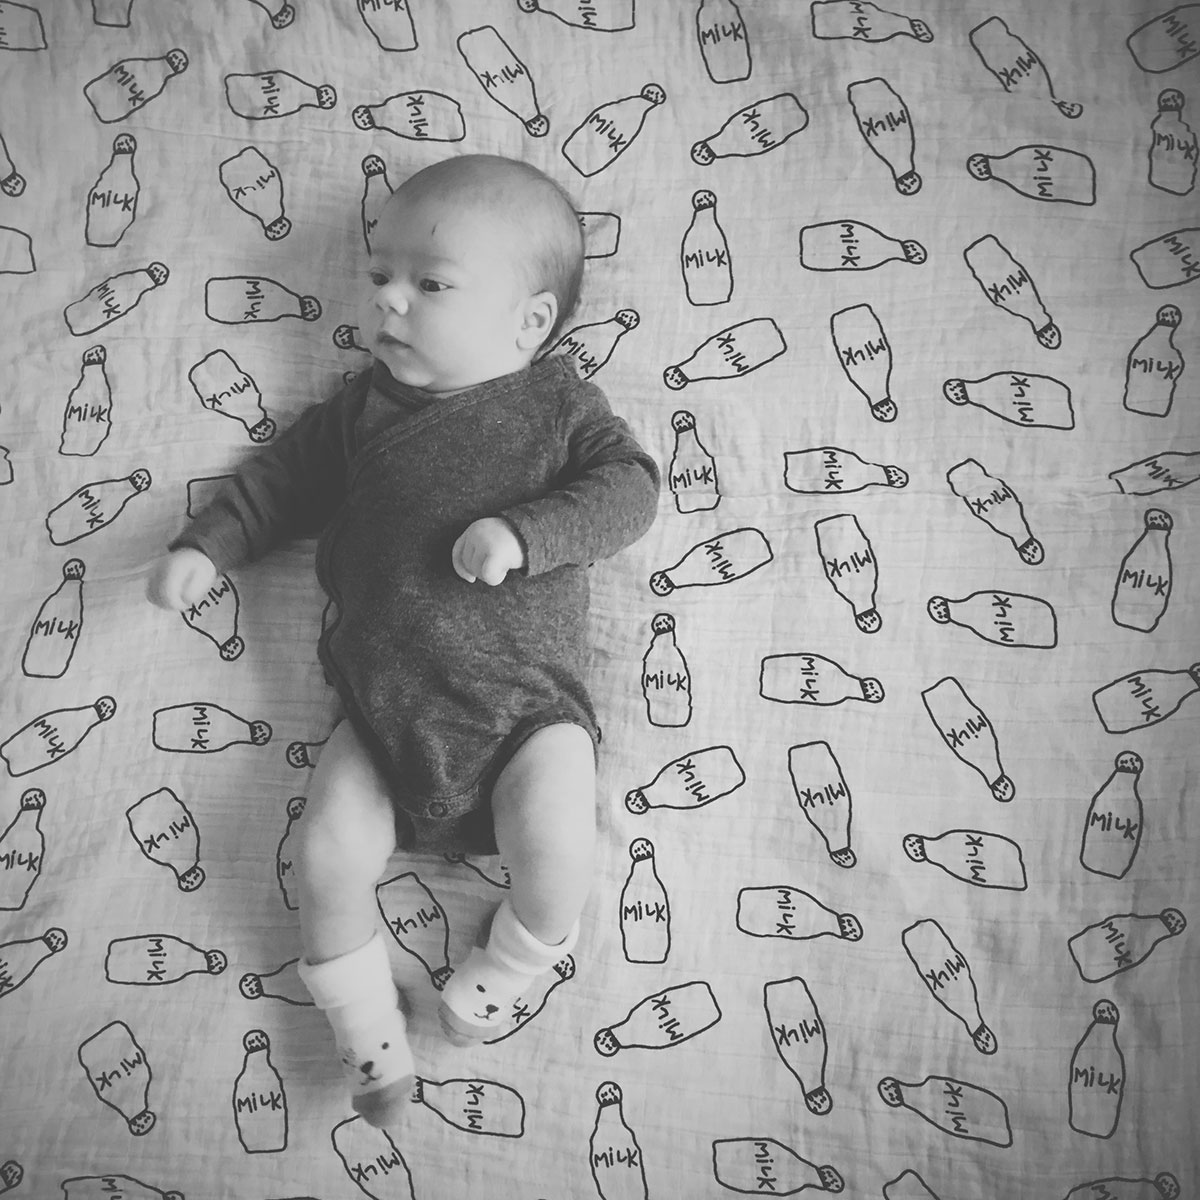 Our month in insta-snaps; September 2016 - Cute newborn baby boy on milk musling blanket